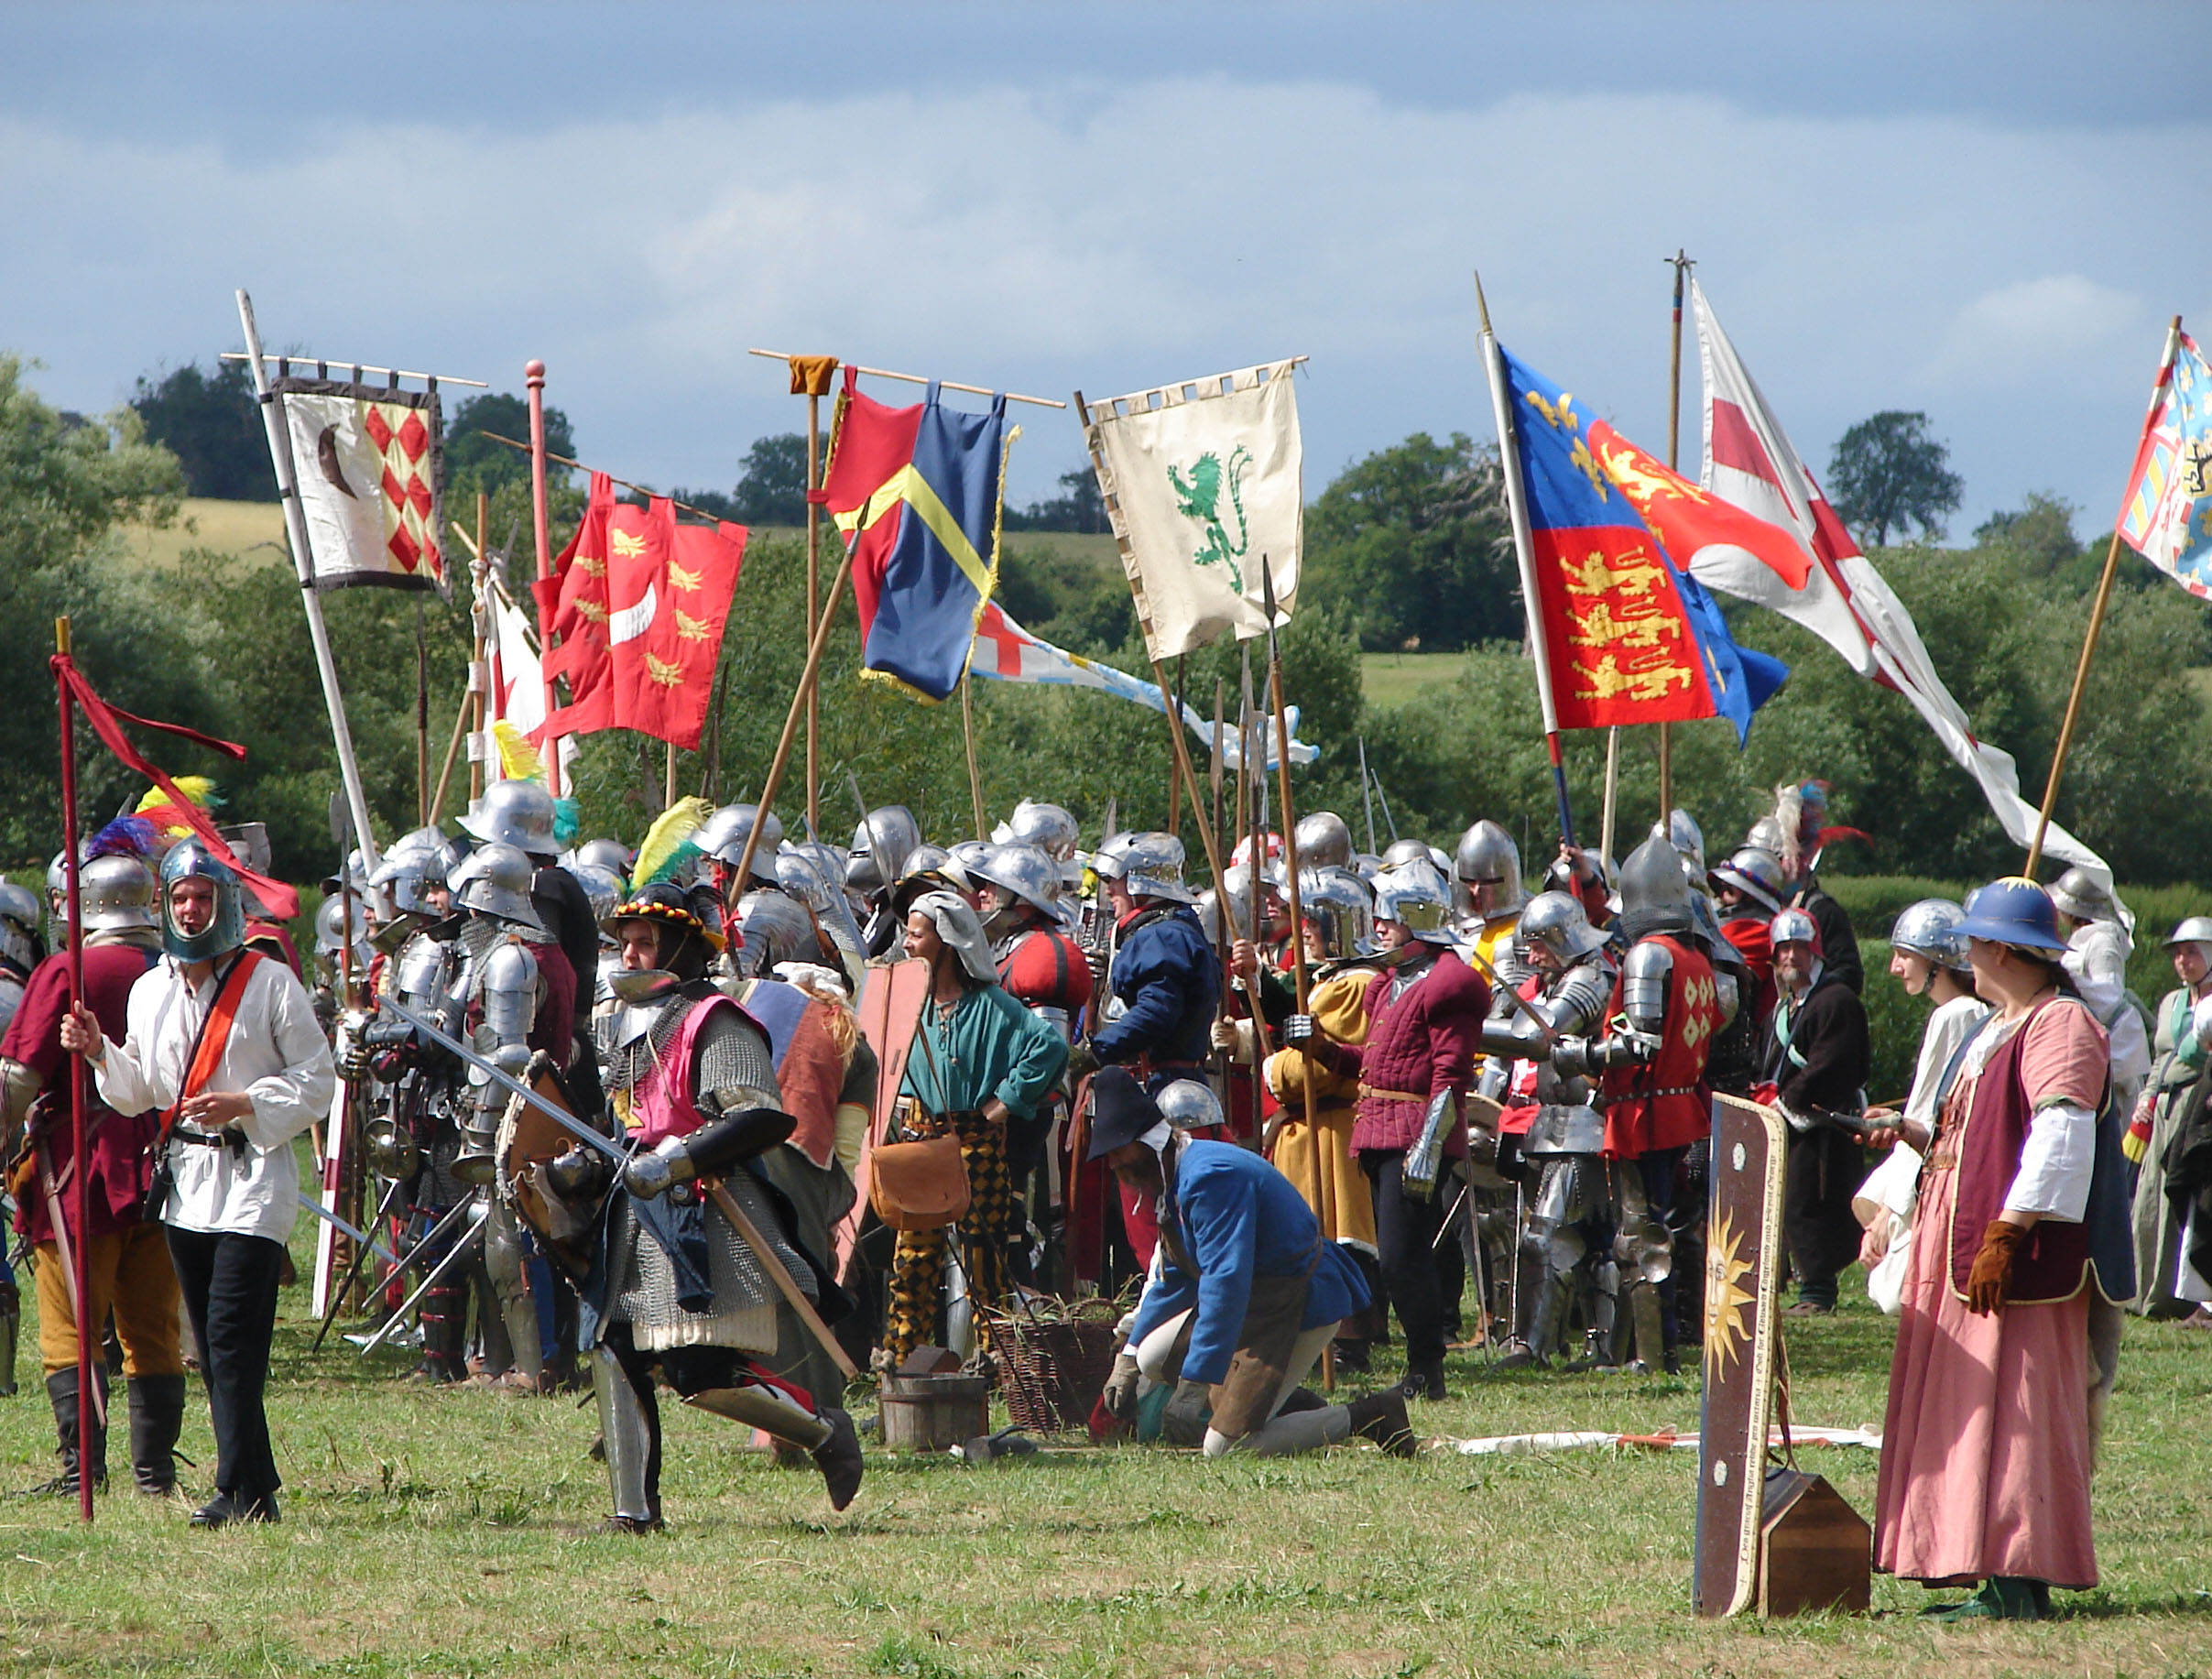 Battle_of_Tewkesbury_reenactment_-_pre-clash_preparation.jpg